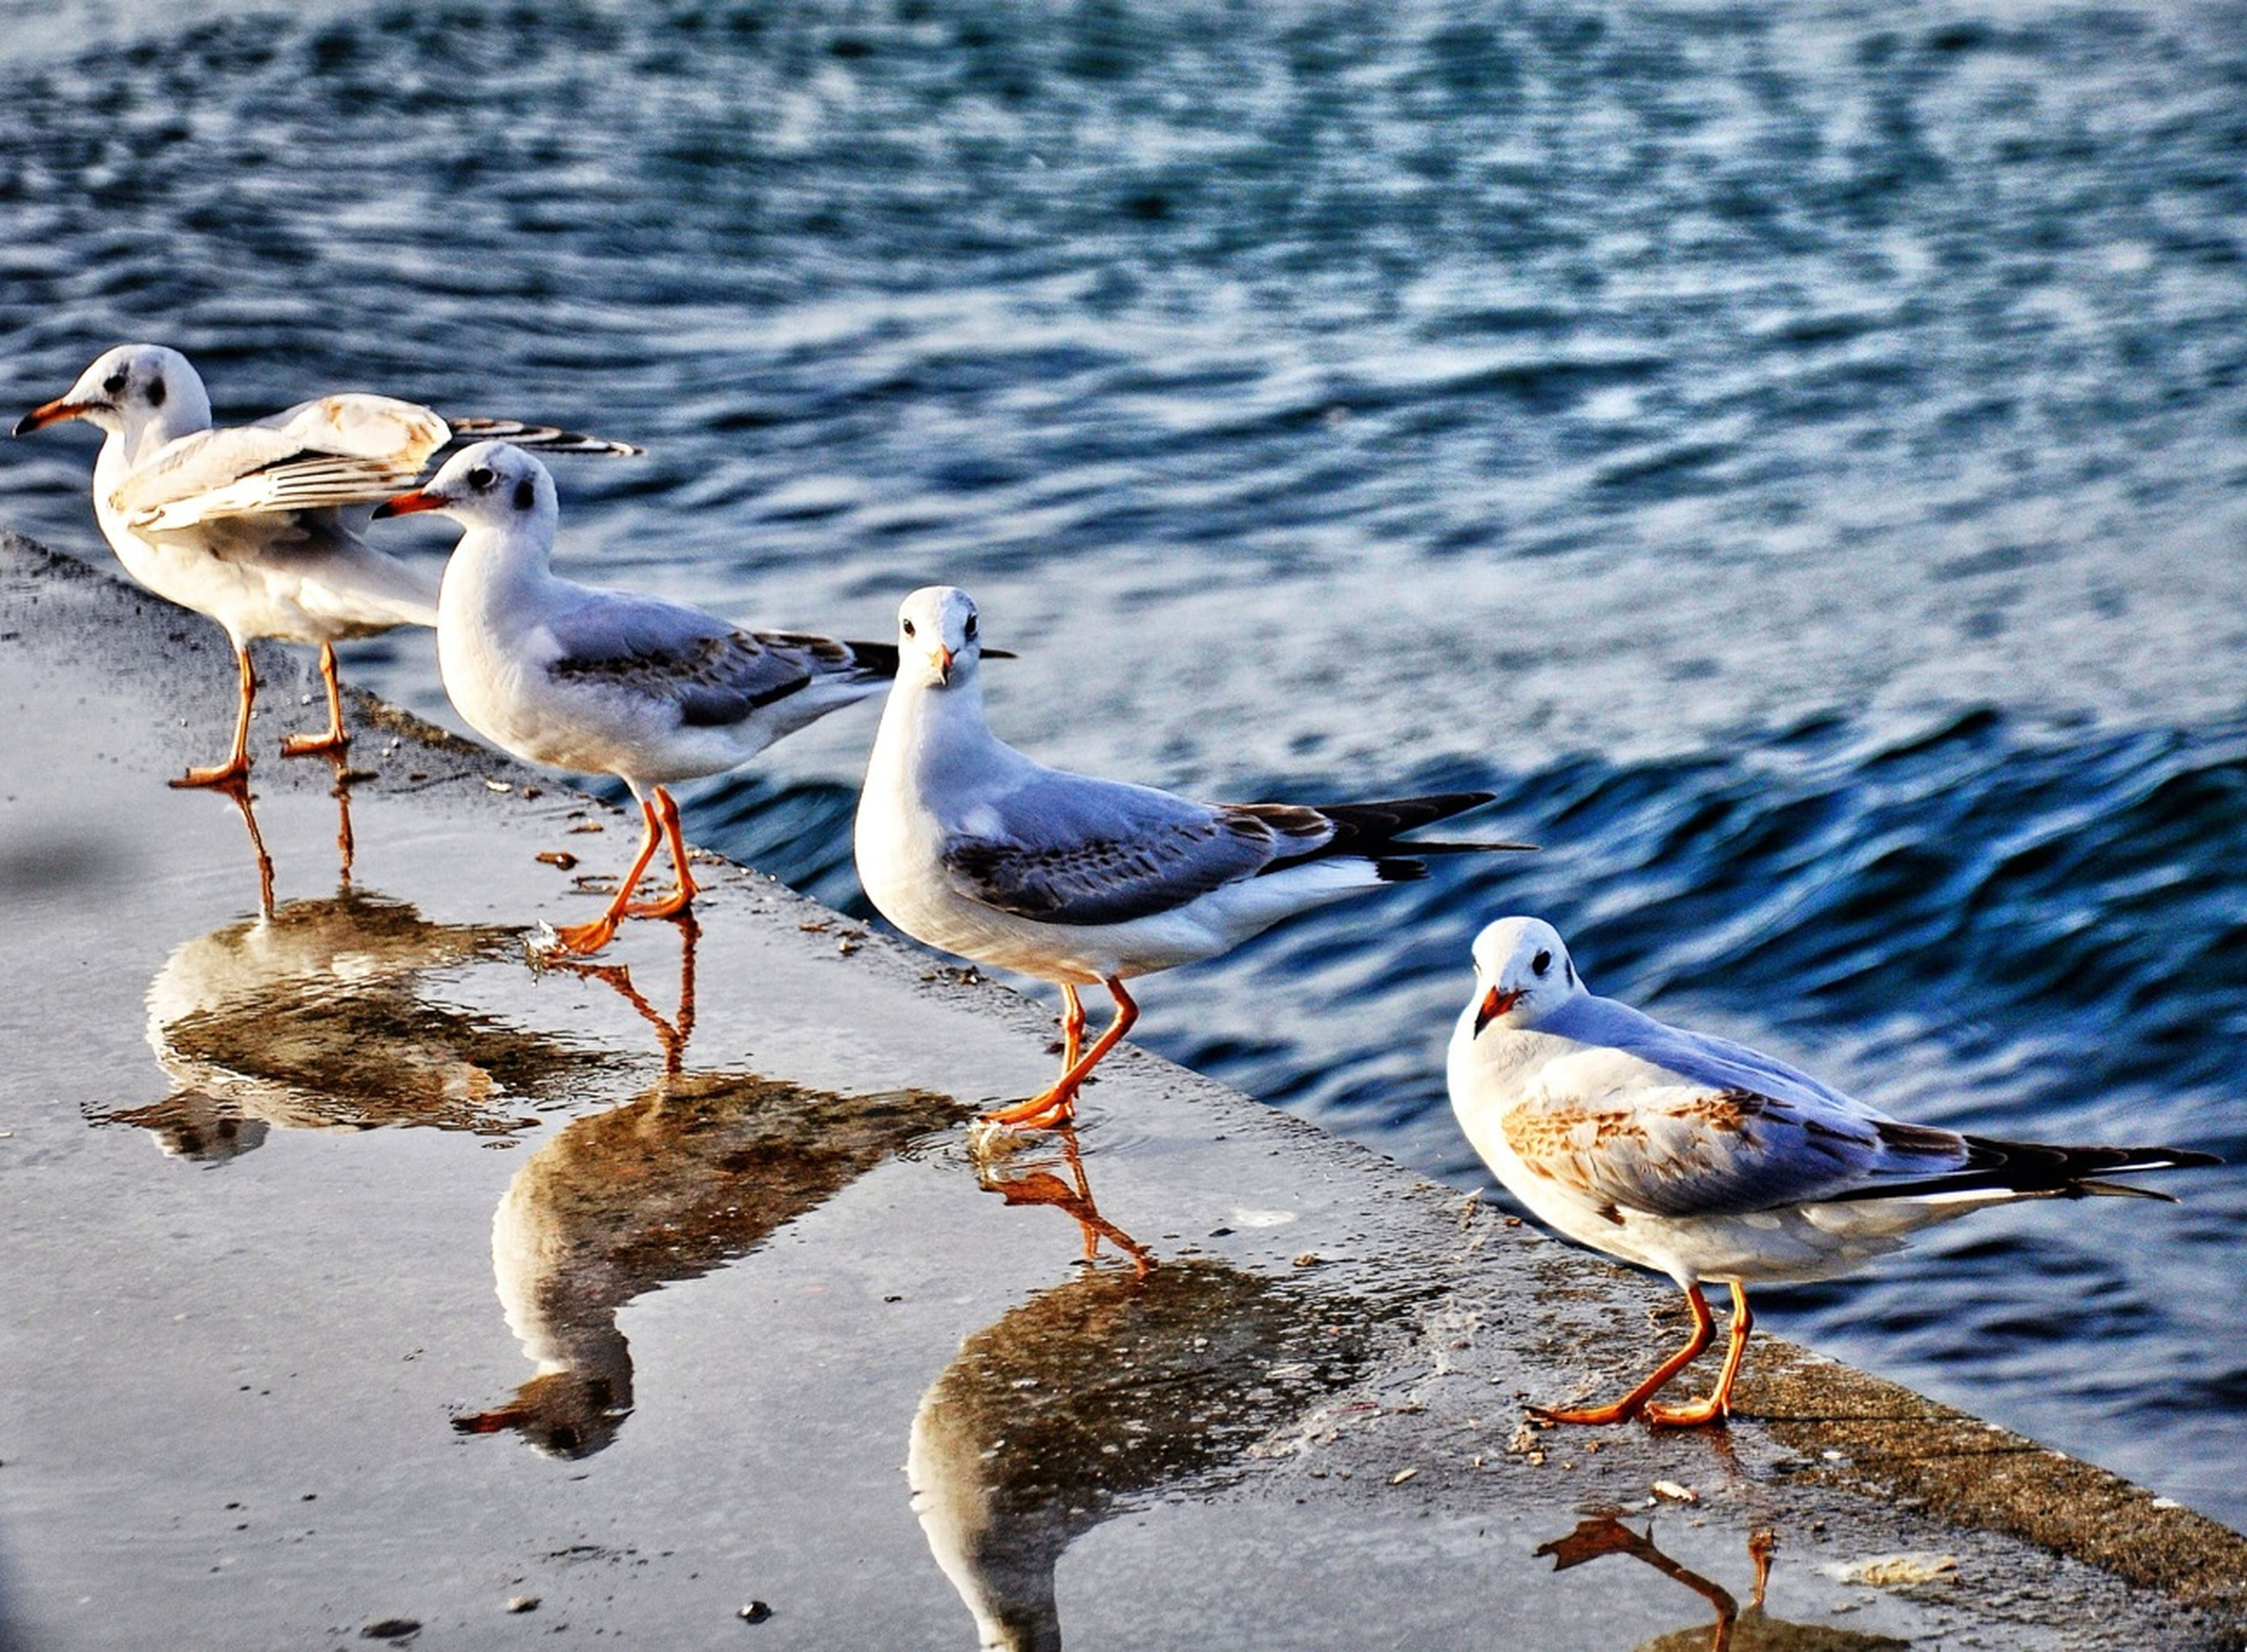 bird, animal themes, animals in the wild, water, wildlife, seagull, duck, lake, togetherness, nature, outdoors, two animals, river, day, no people, focus on foreground, rippled, zoology, vertebrate, lakeshore